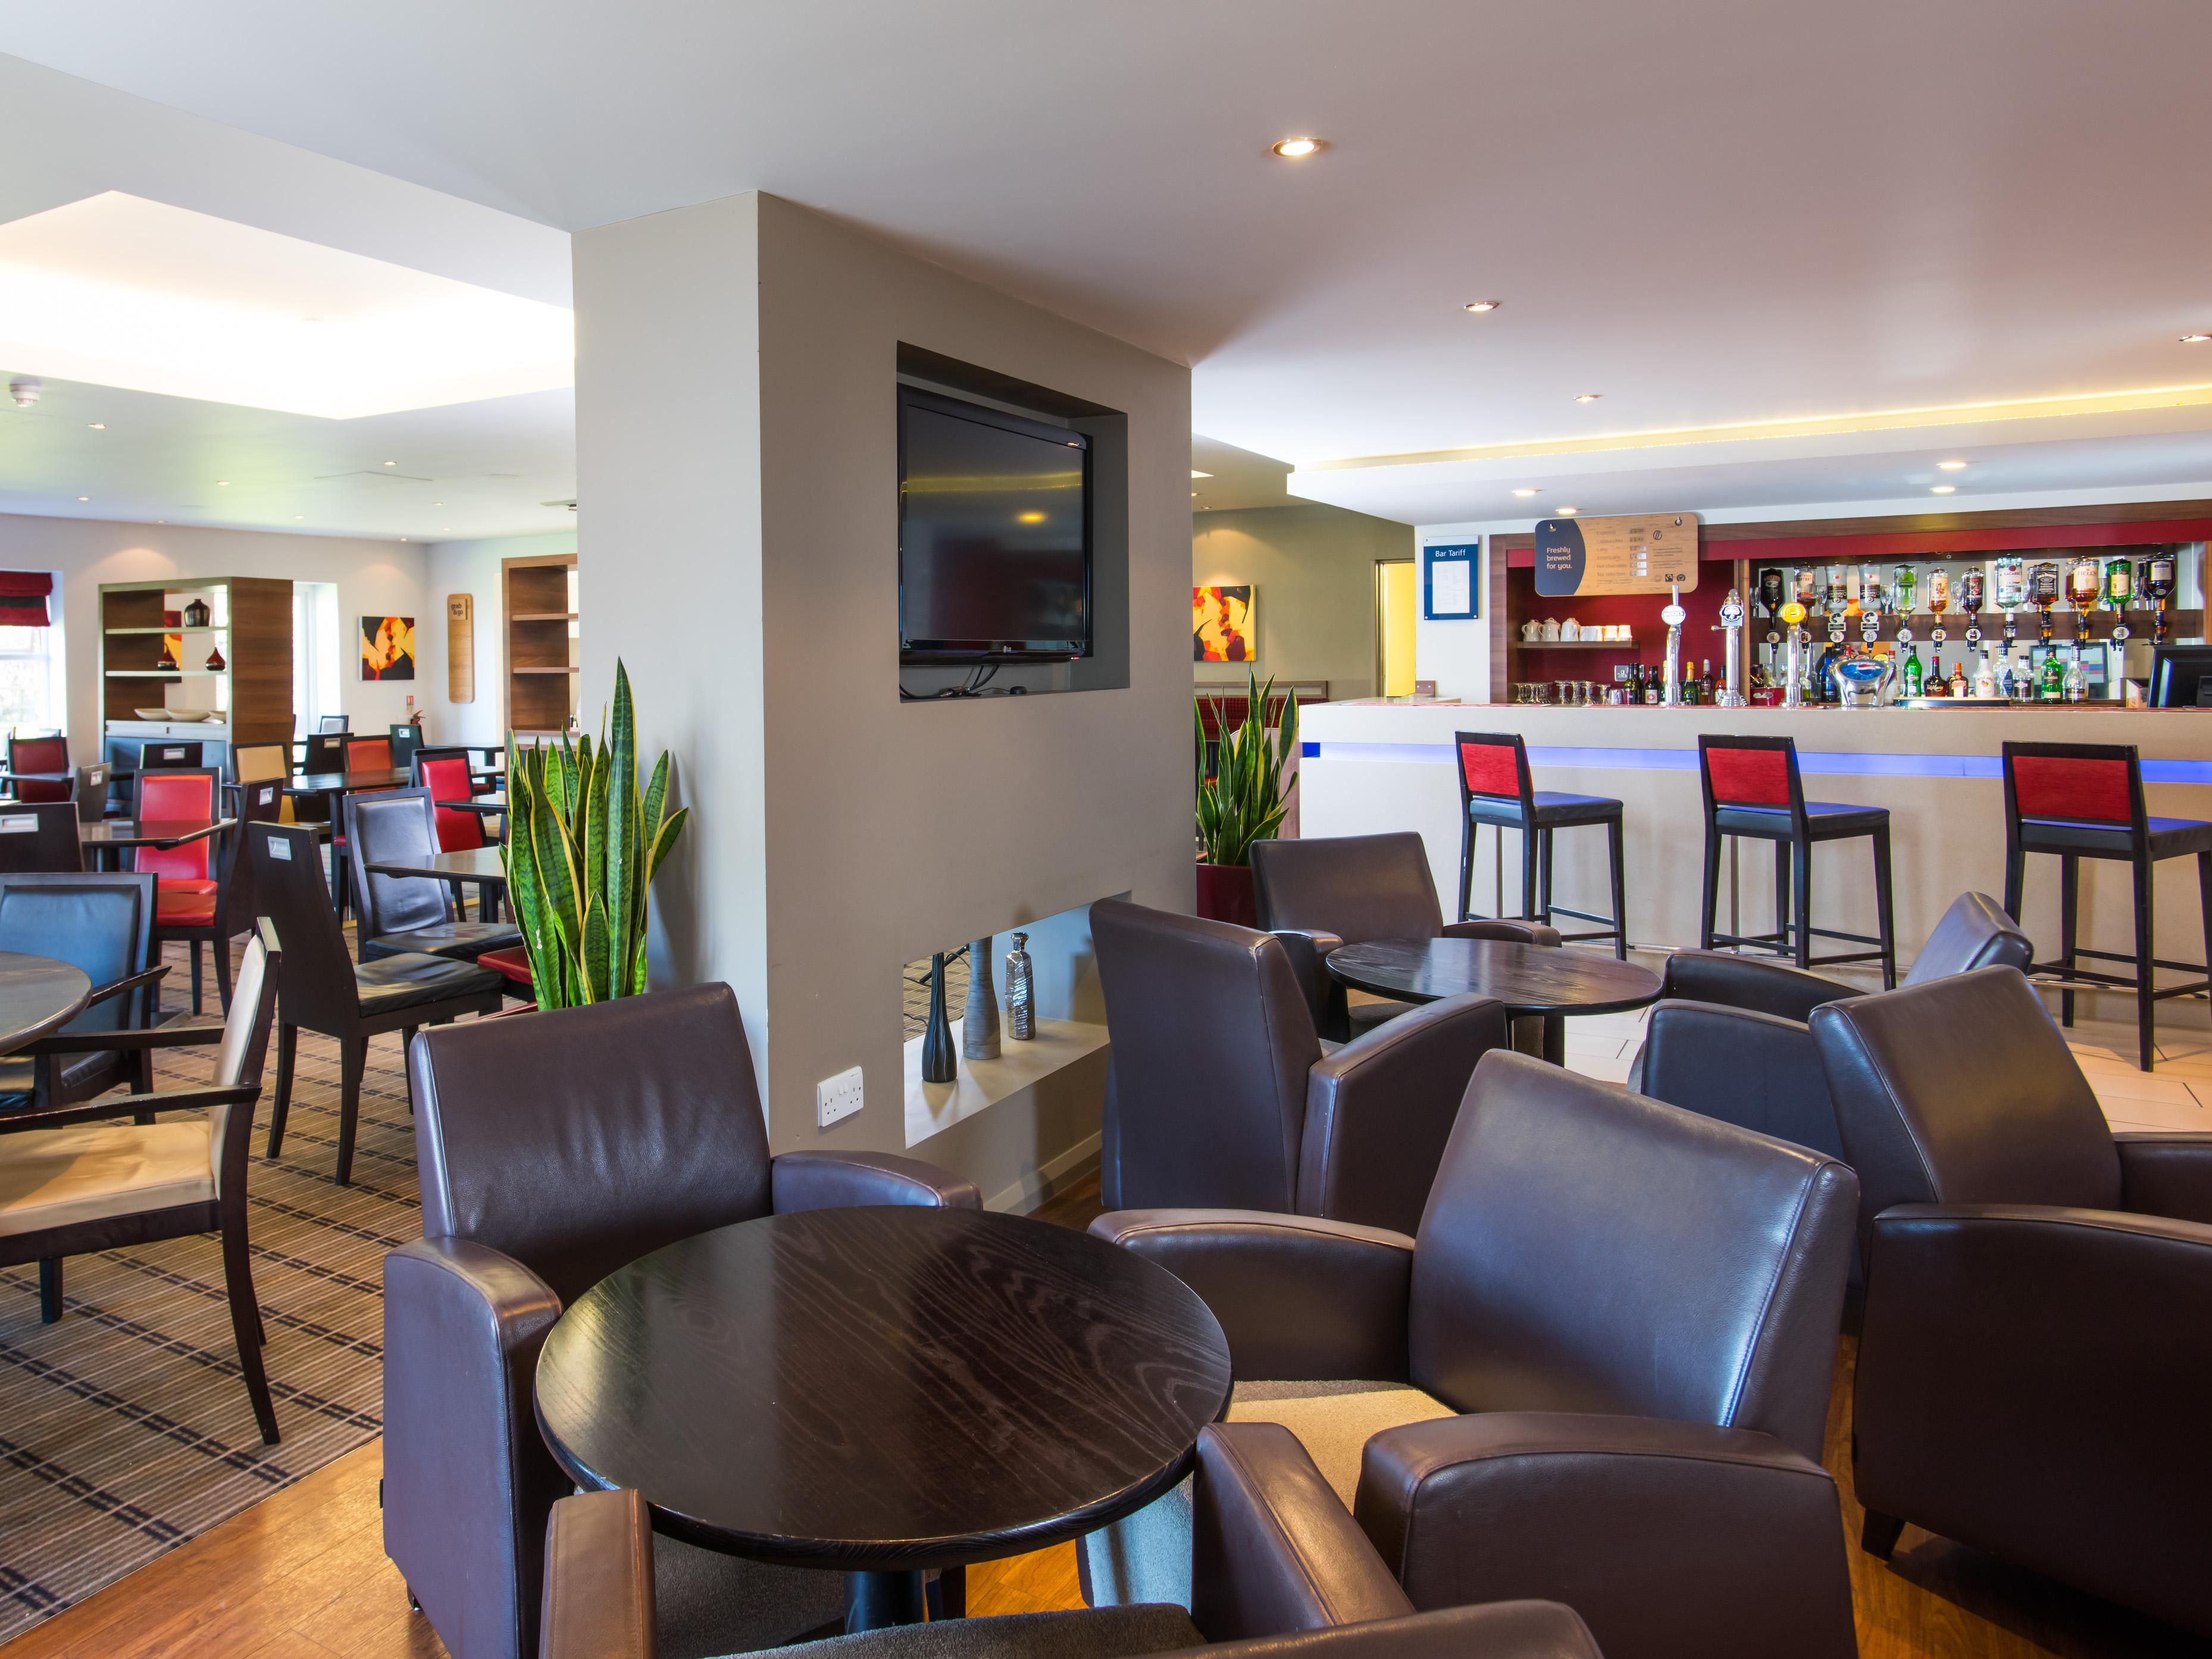 Catch up with the latest news in our homely Great Room